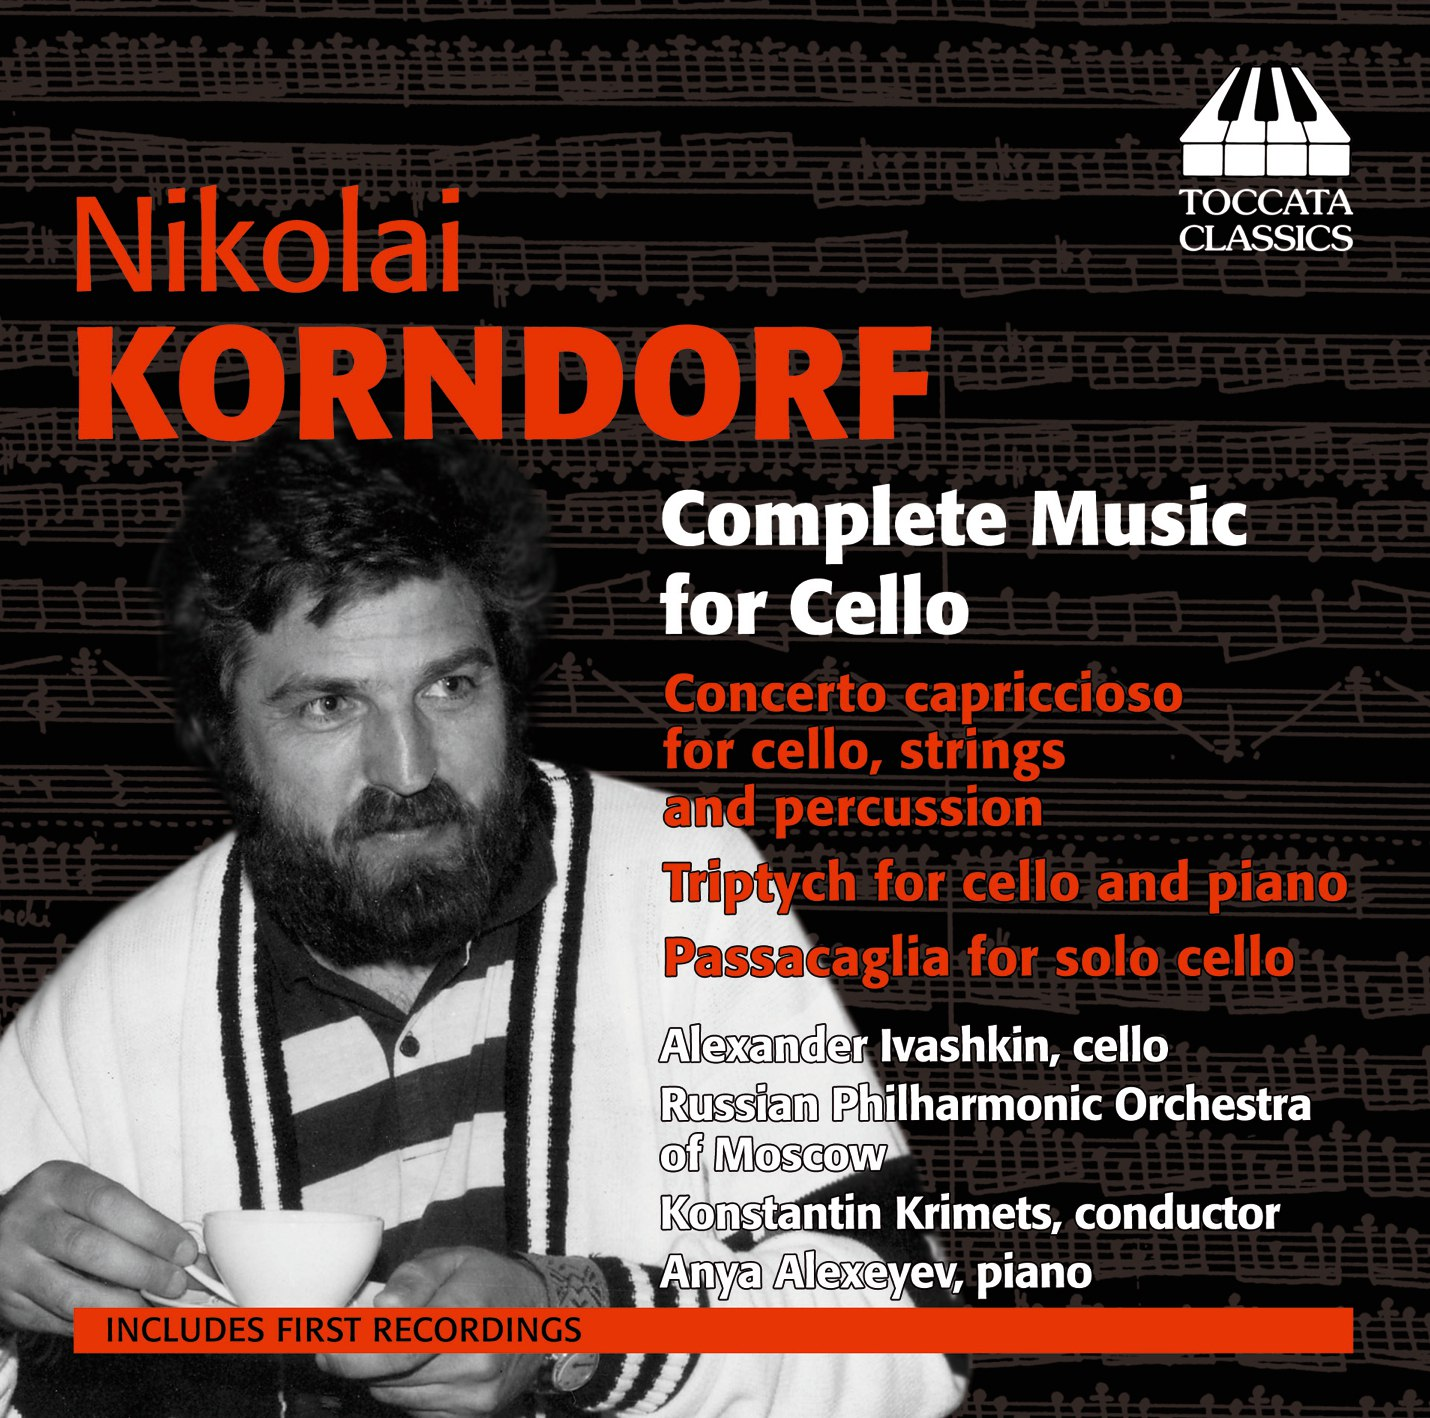 Nikolai Korndorf: Complete Music for Cello